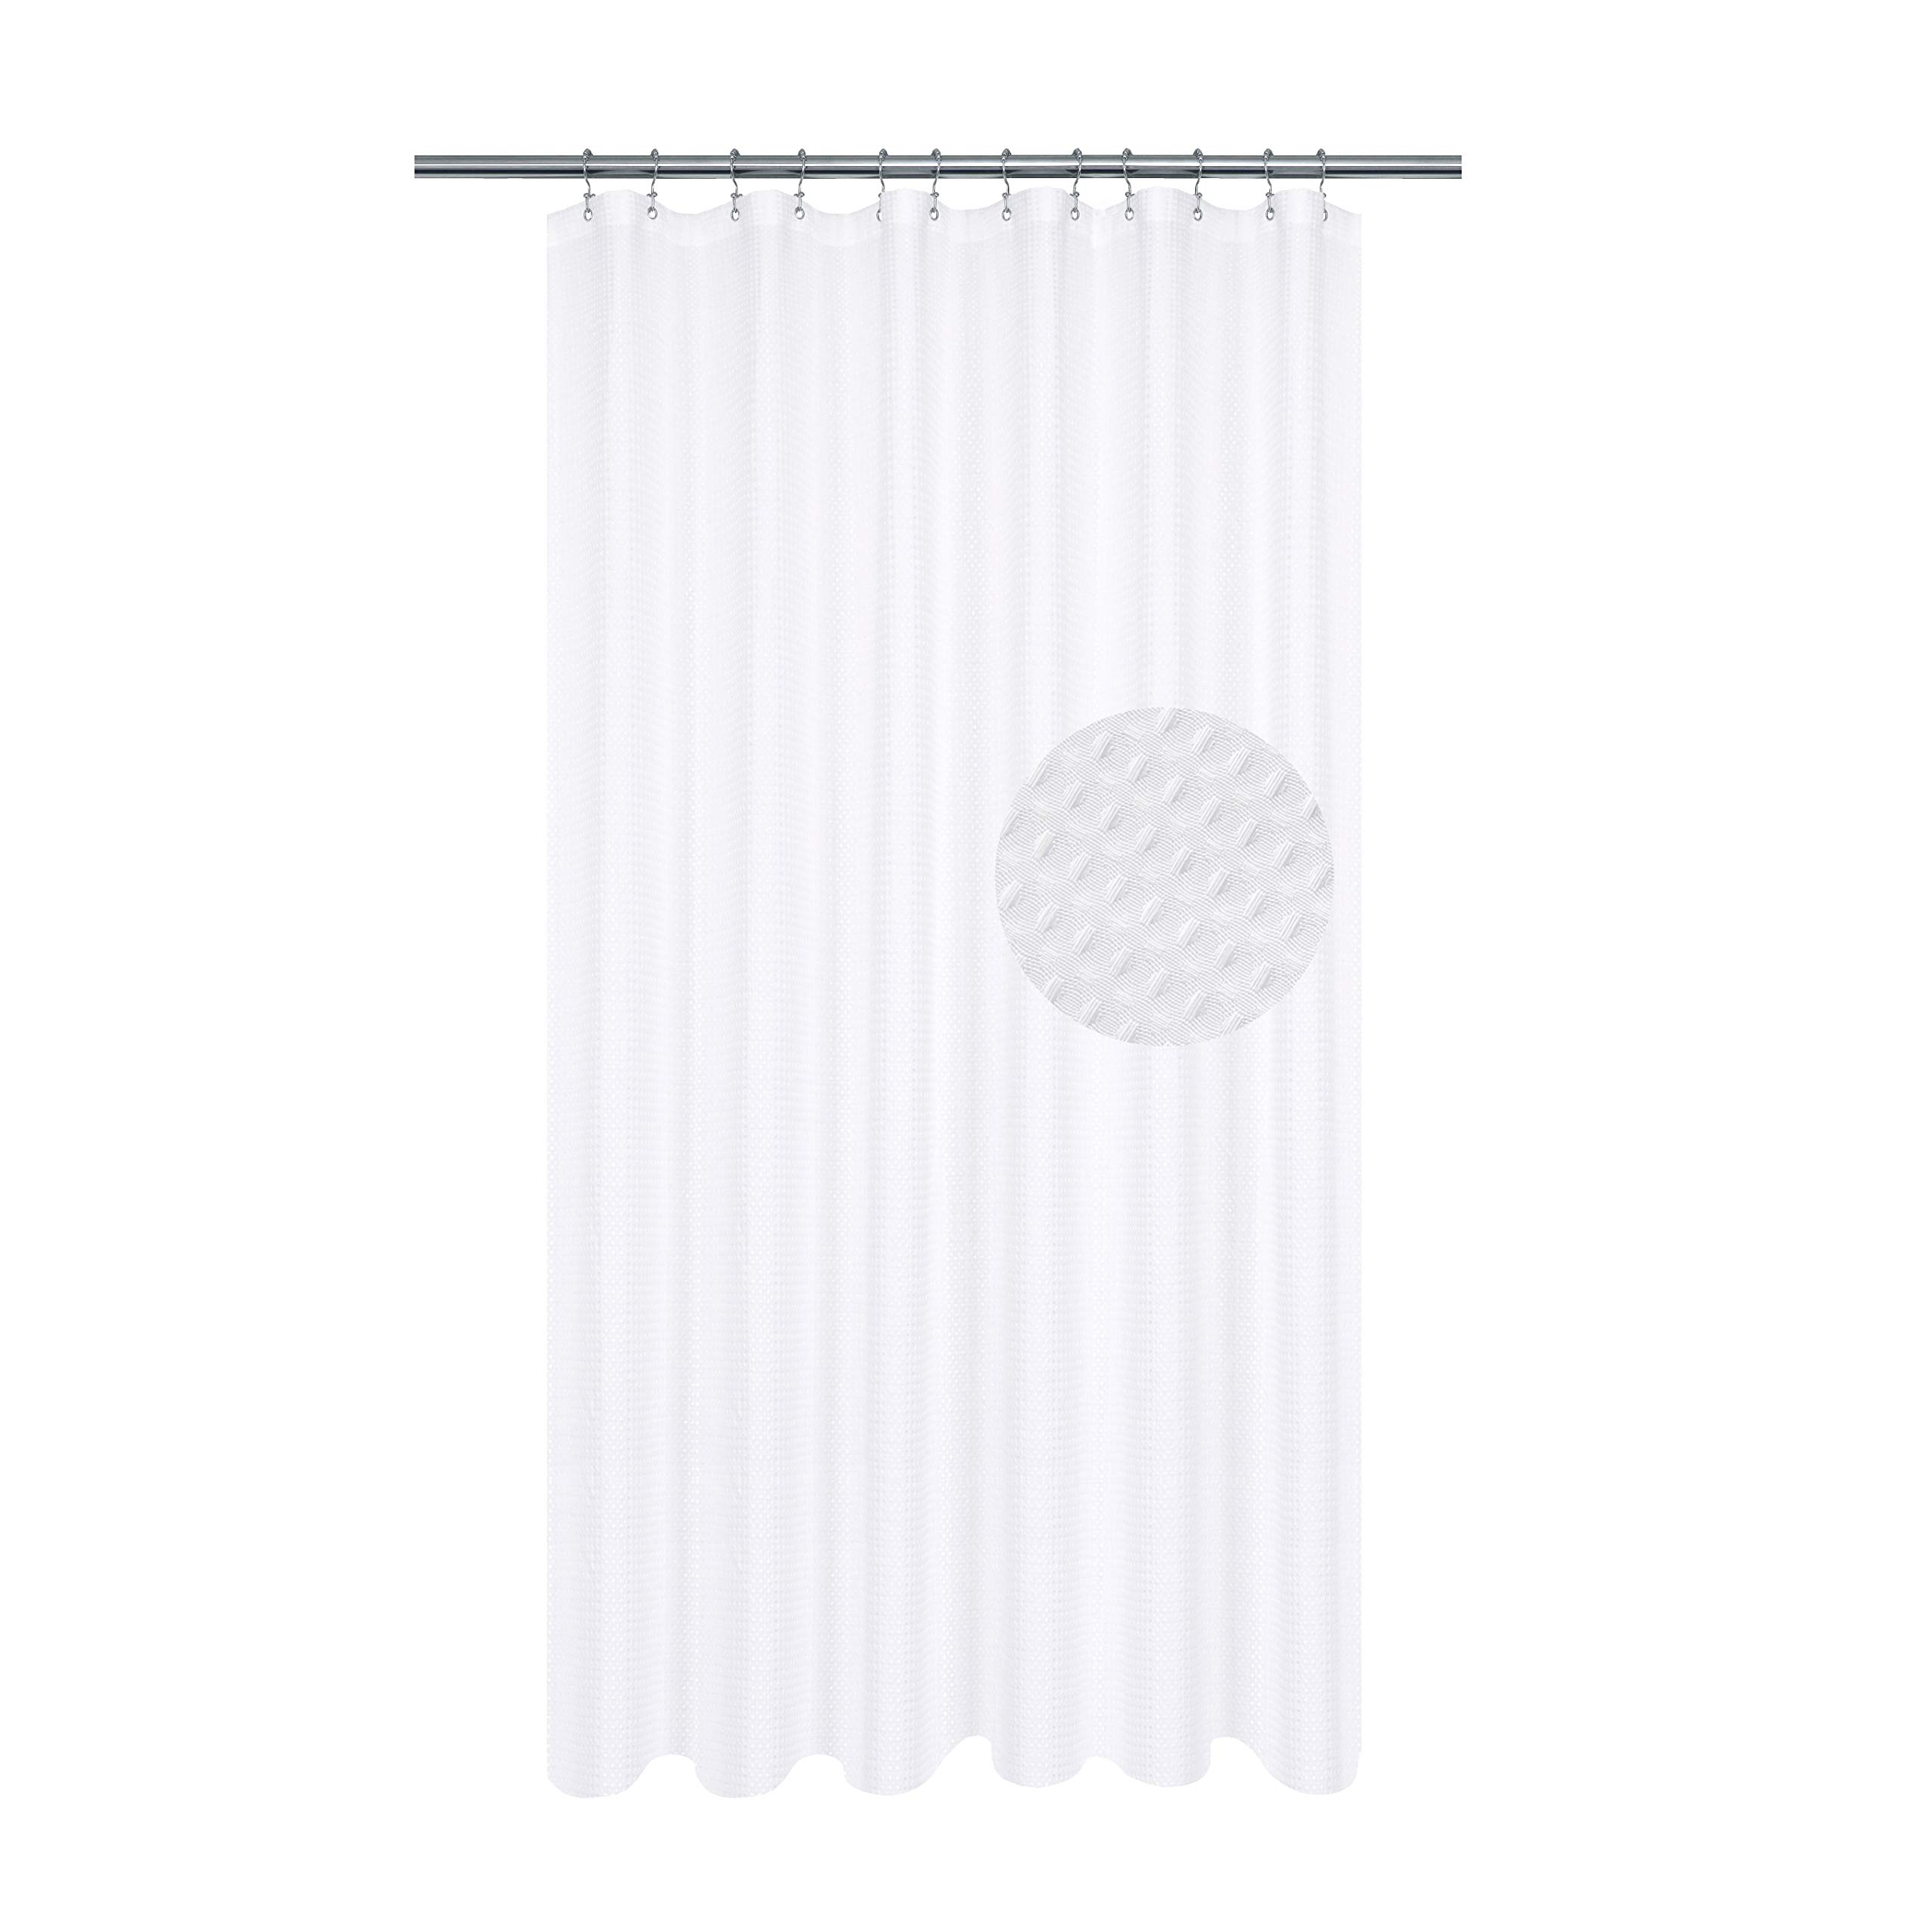 Long Shower Curtain with 80 inch Height, Fabric, Waffle Weave, Hotel Collection, Water Repellent, Machine Washable, 230 GSM Heavy Duty, White Pique Pattern Decorative Bathroom Curtain